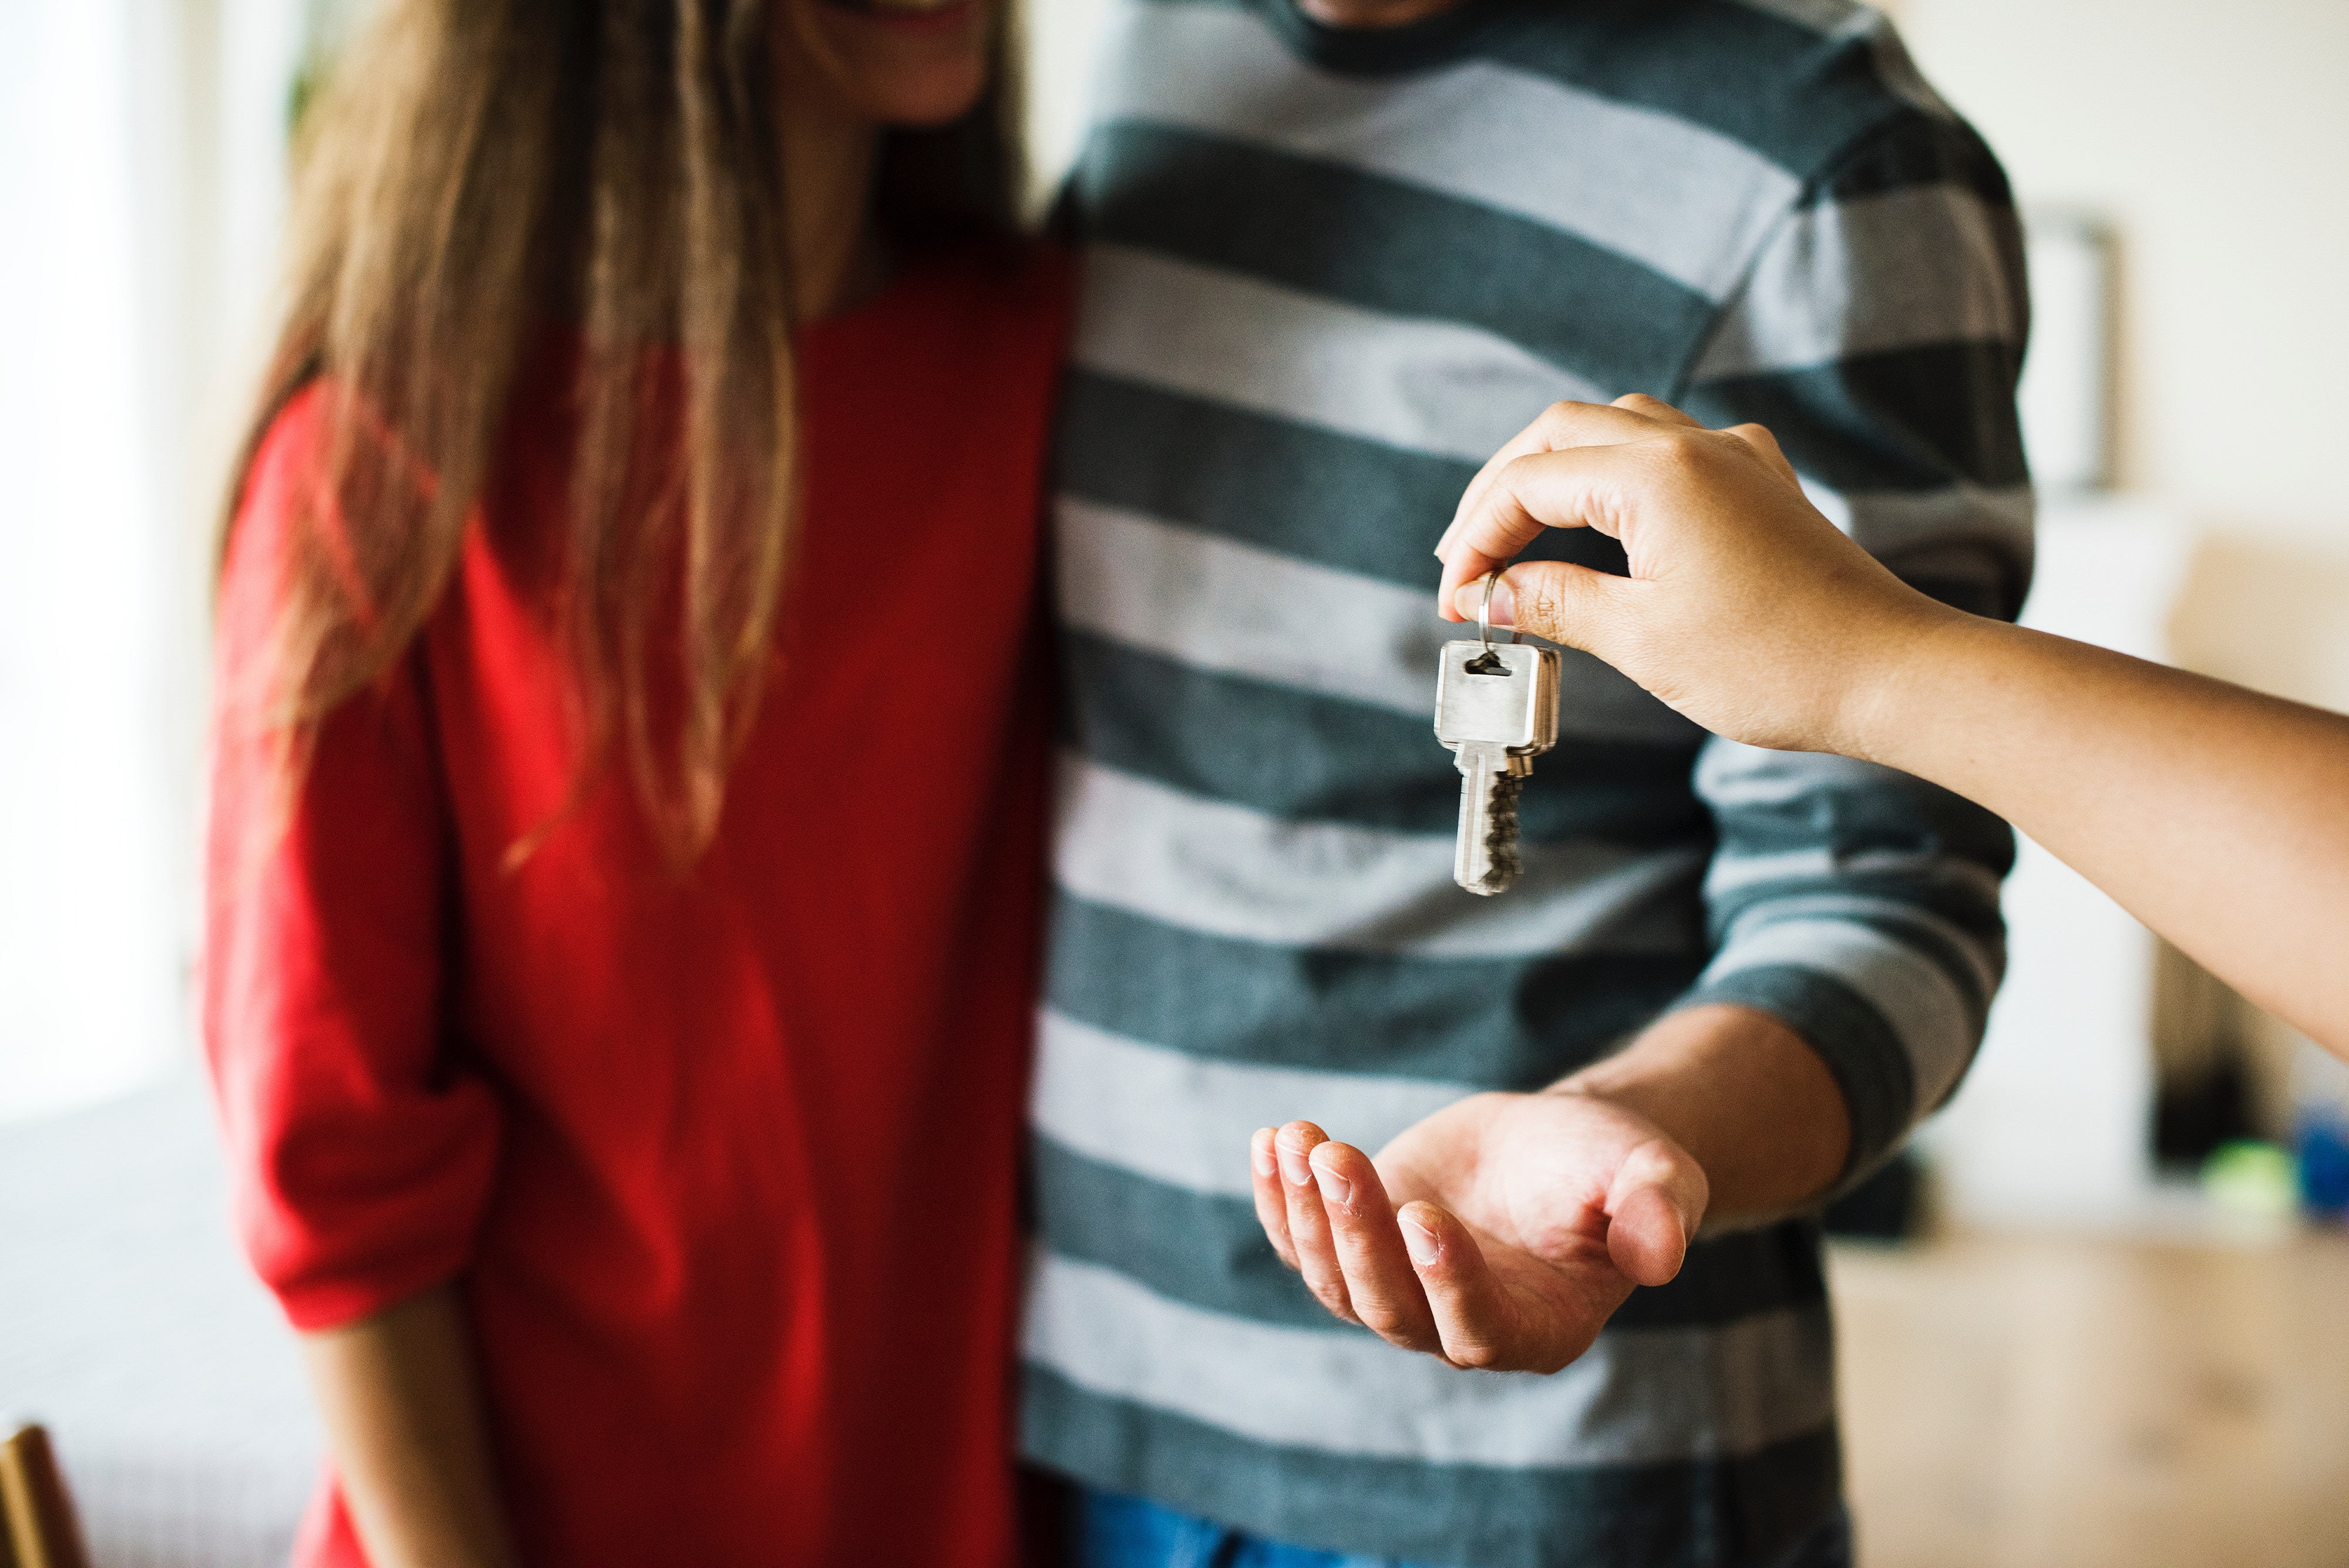 should i refinance my mortgage or sell